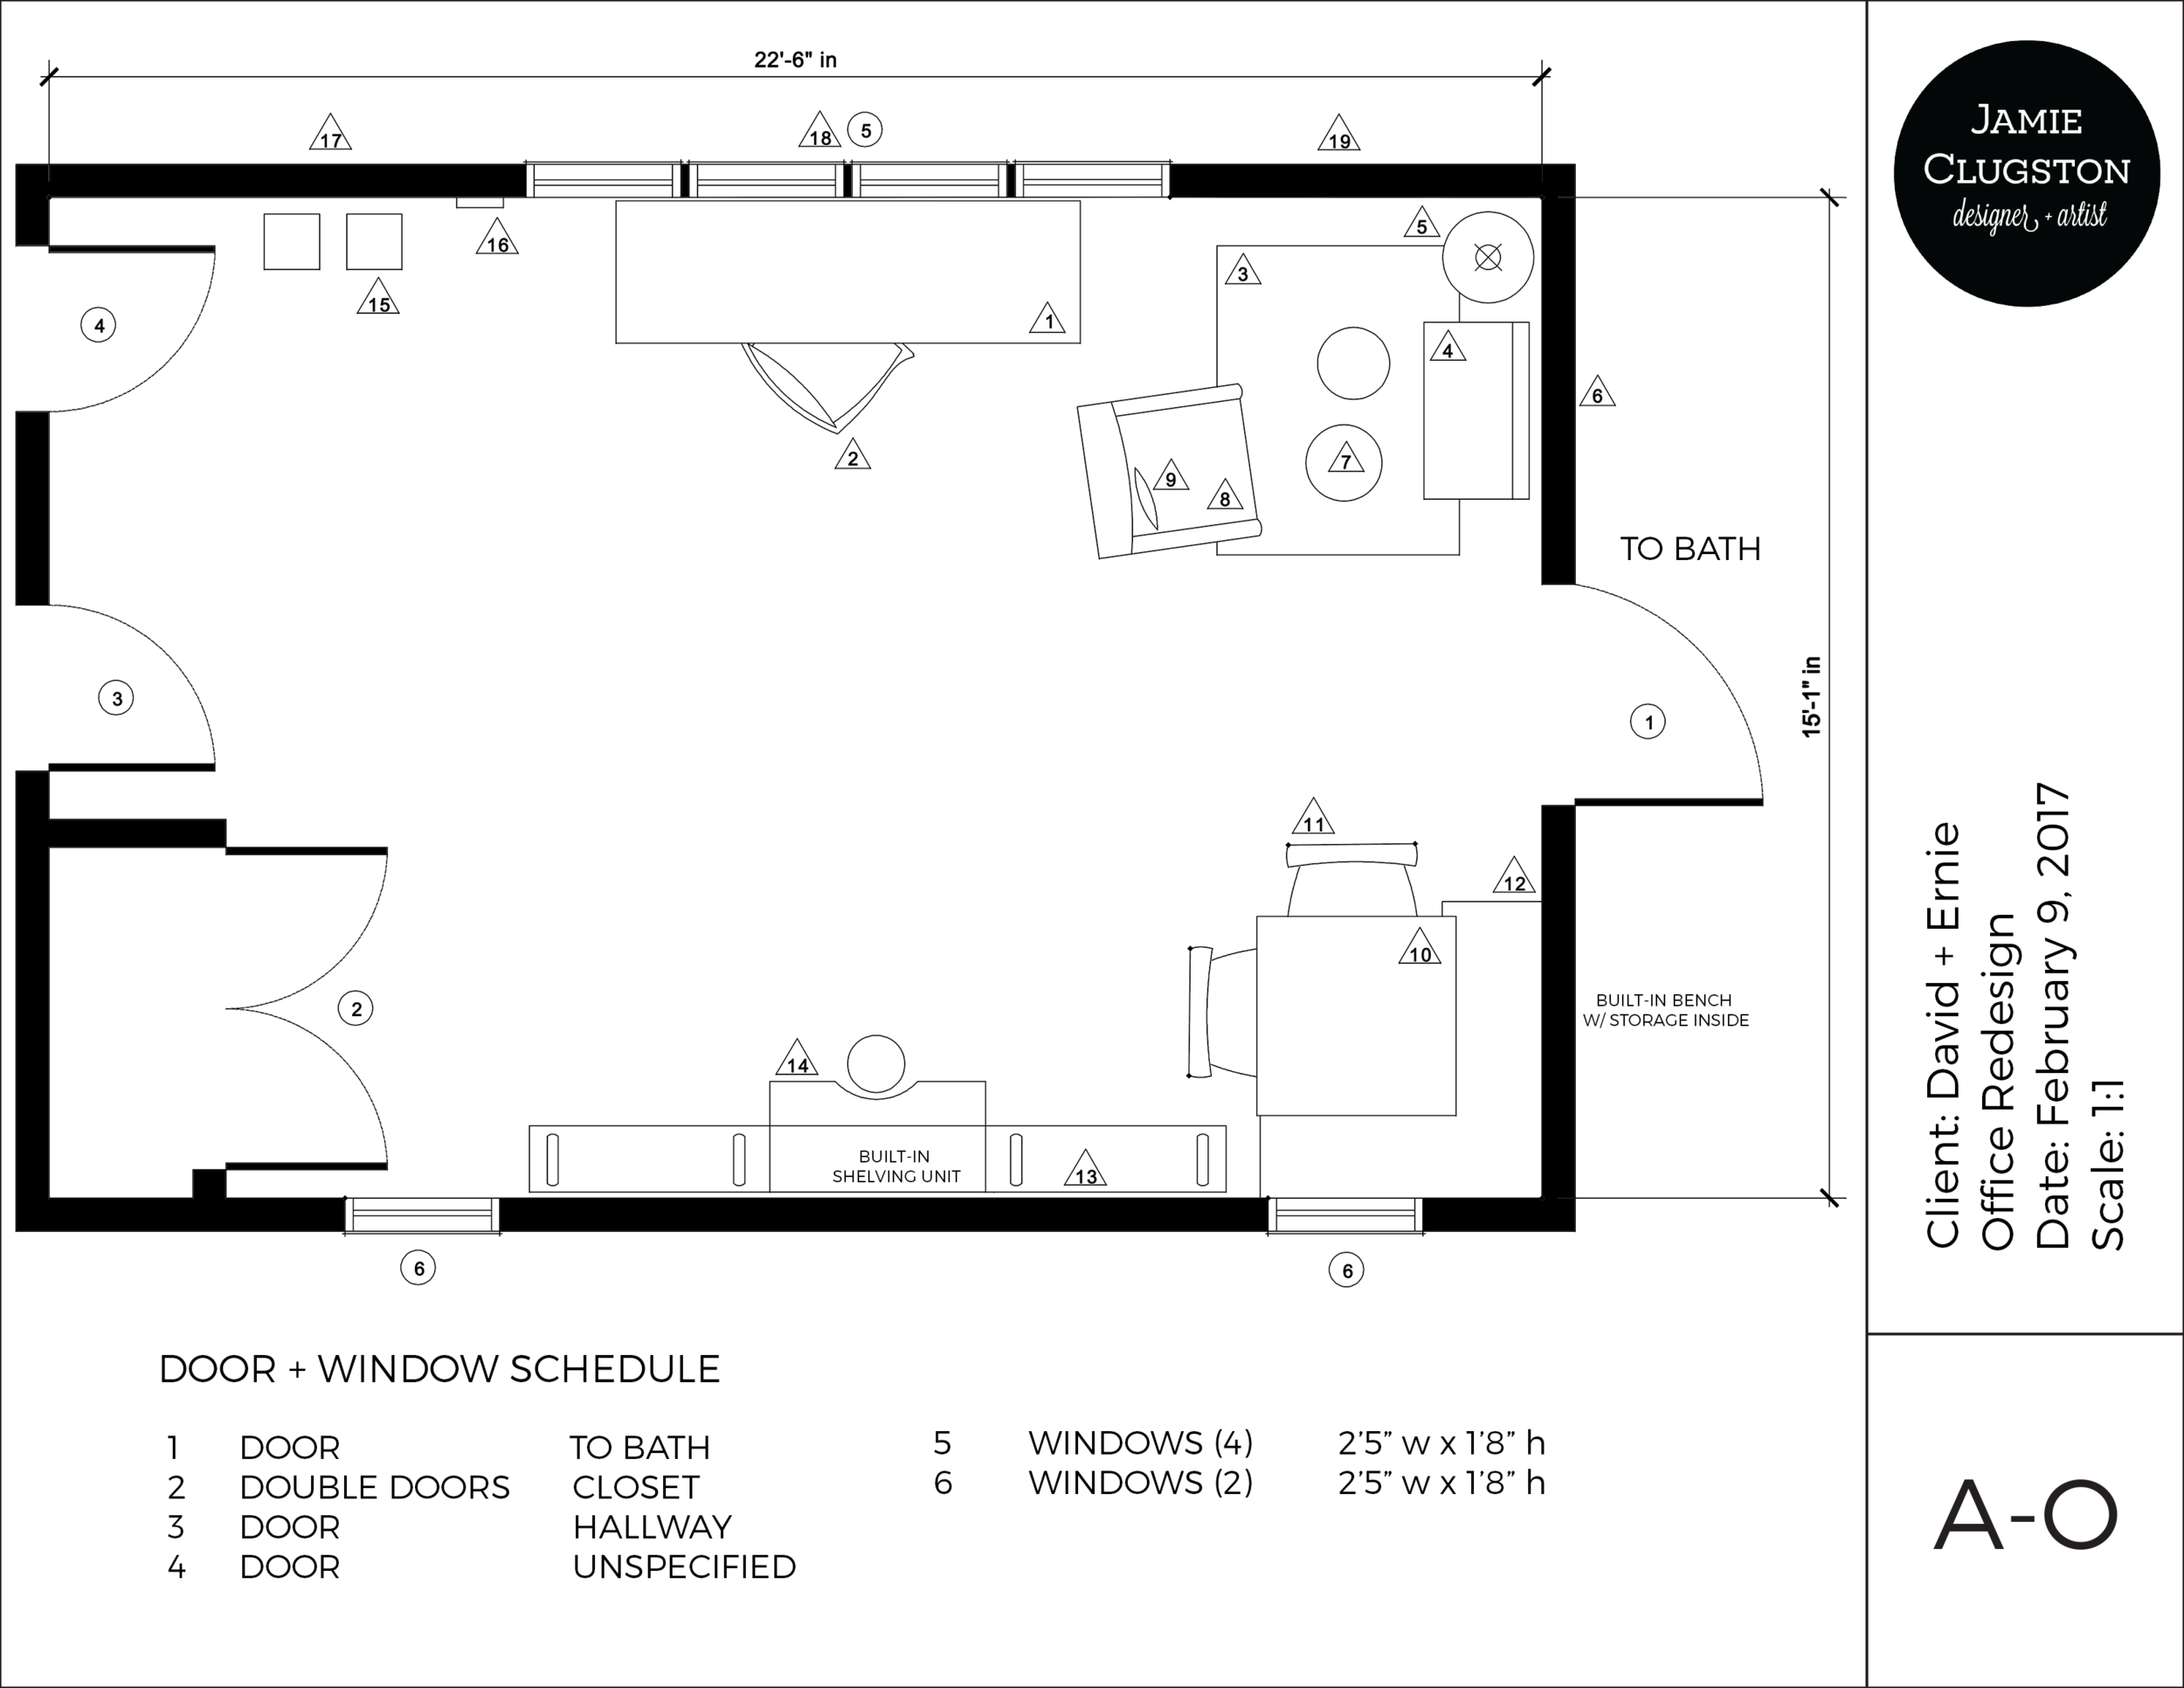 A-0 Massachusetts Office Floorplan with labels FDP Jamie Clugston.png